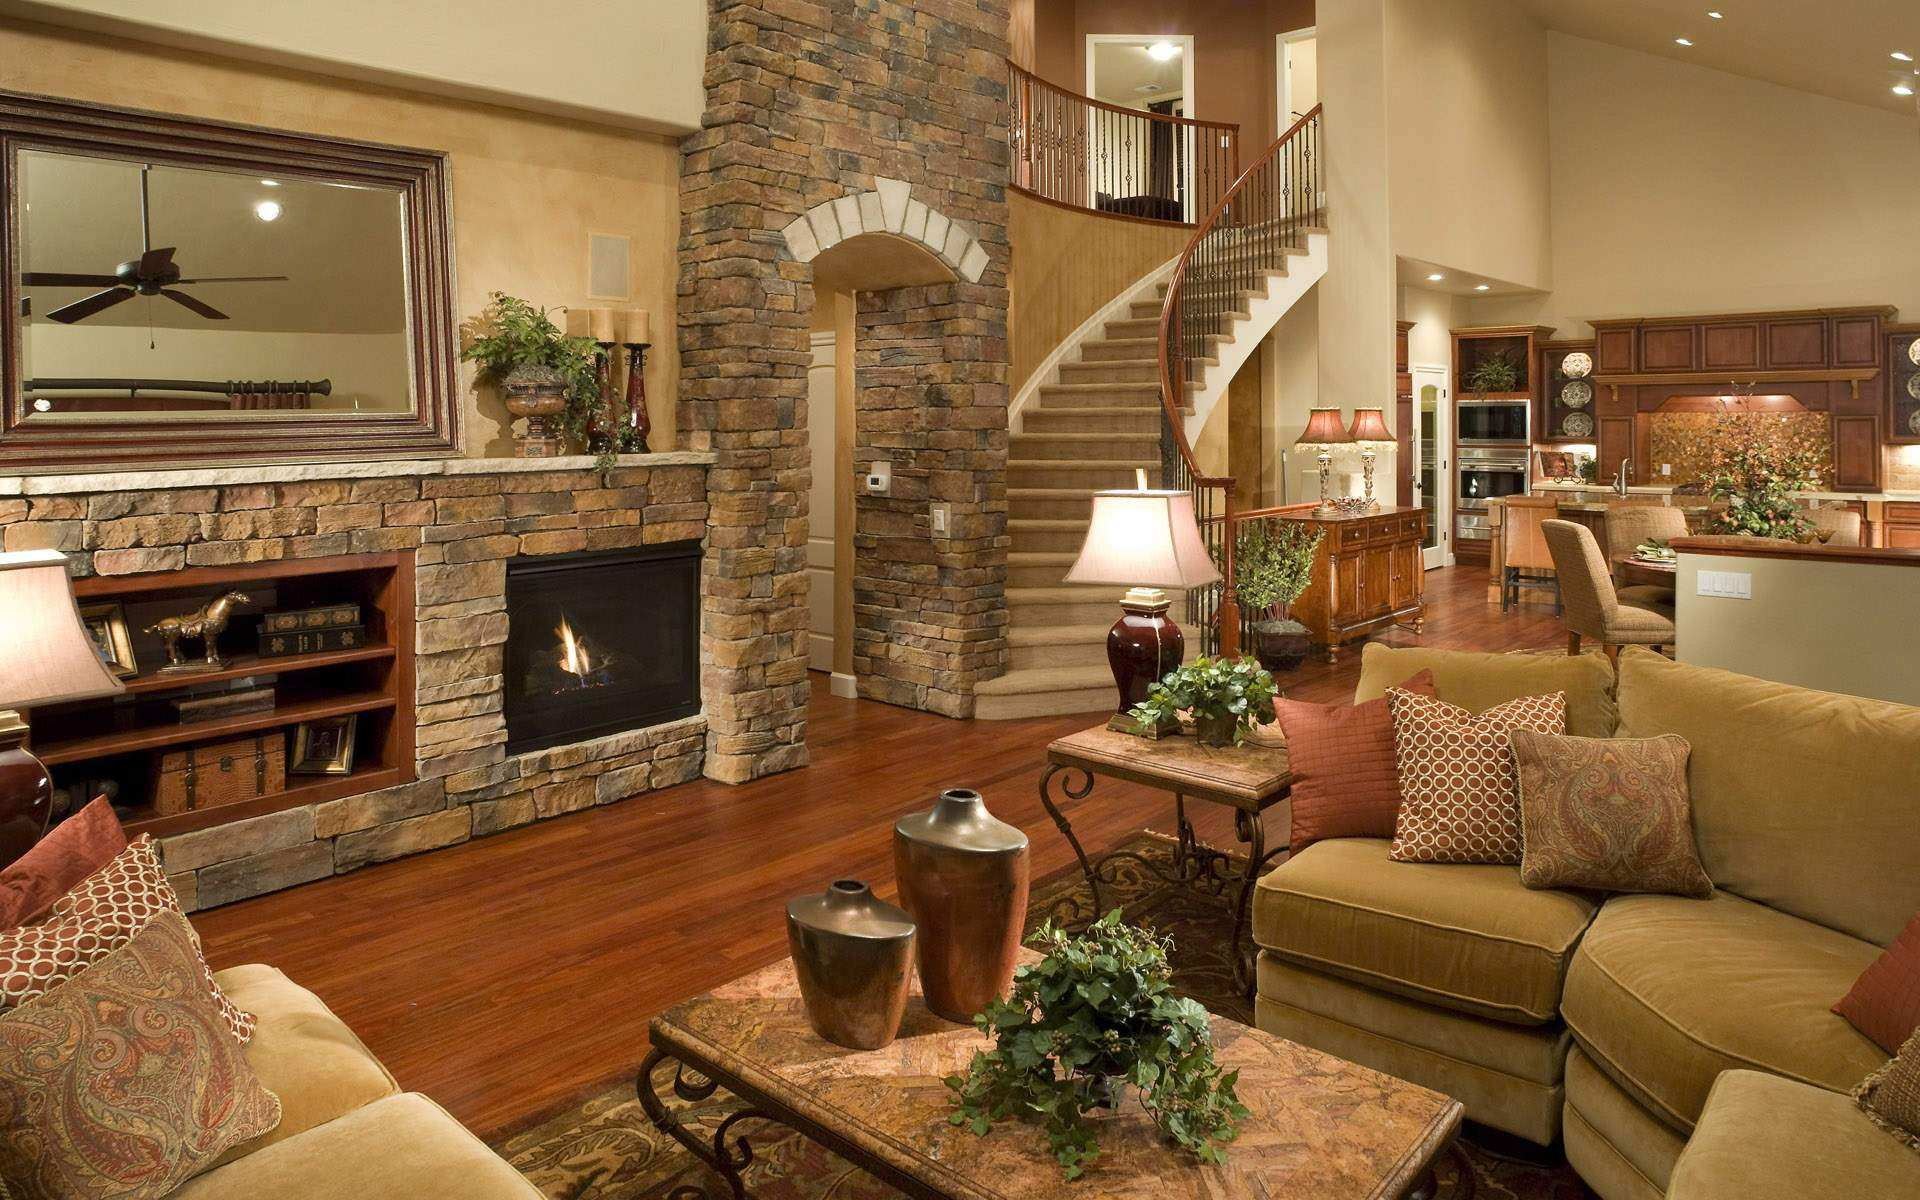 25 Stunning Home Interior Designs Ideas - The WoW Style on Photo Room Decor  id=16788